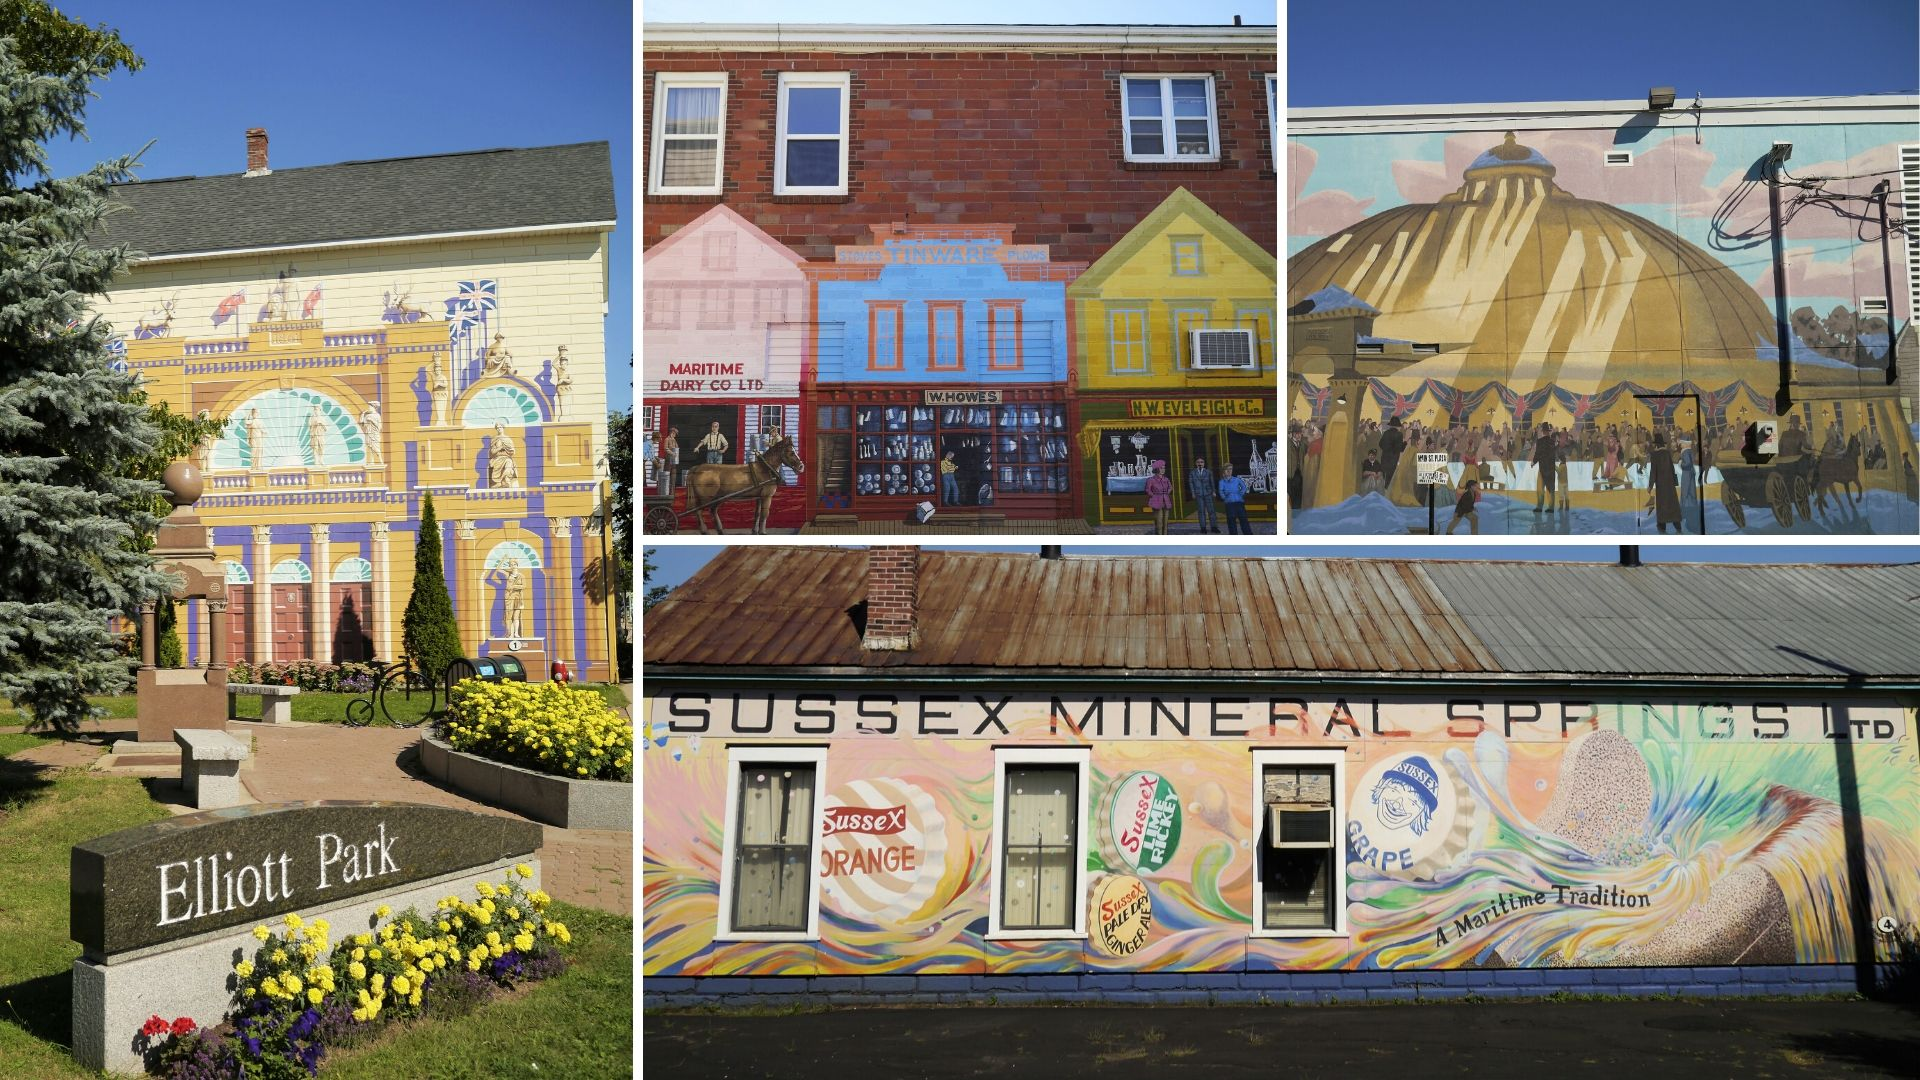 Sussex NB fresques murales